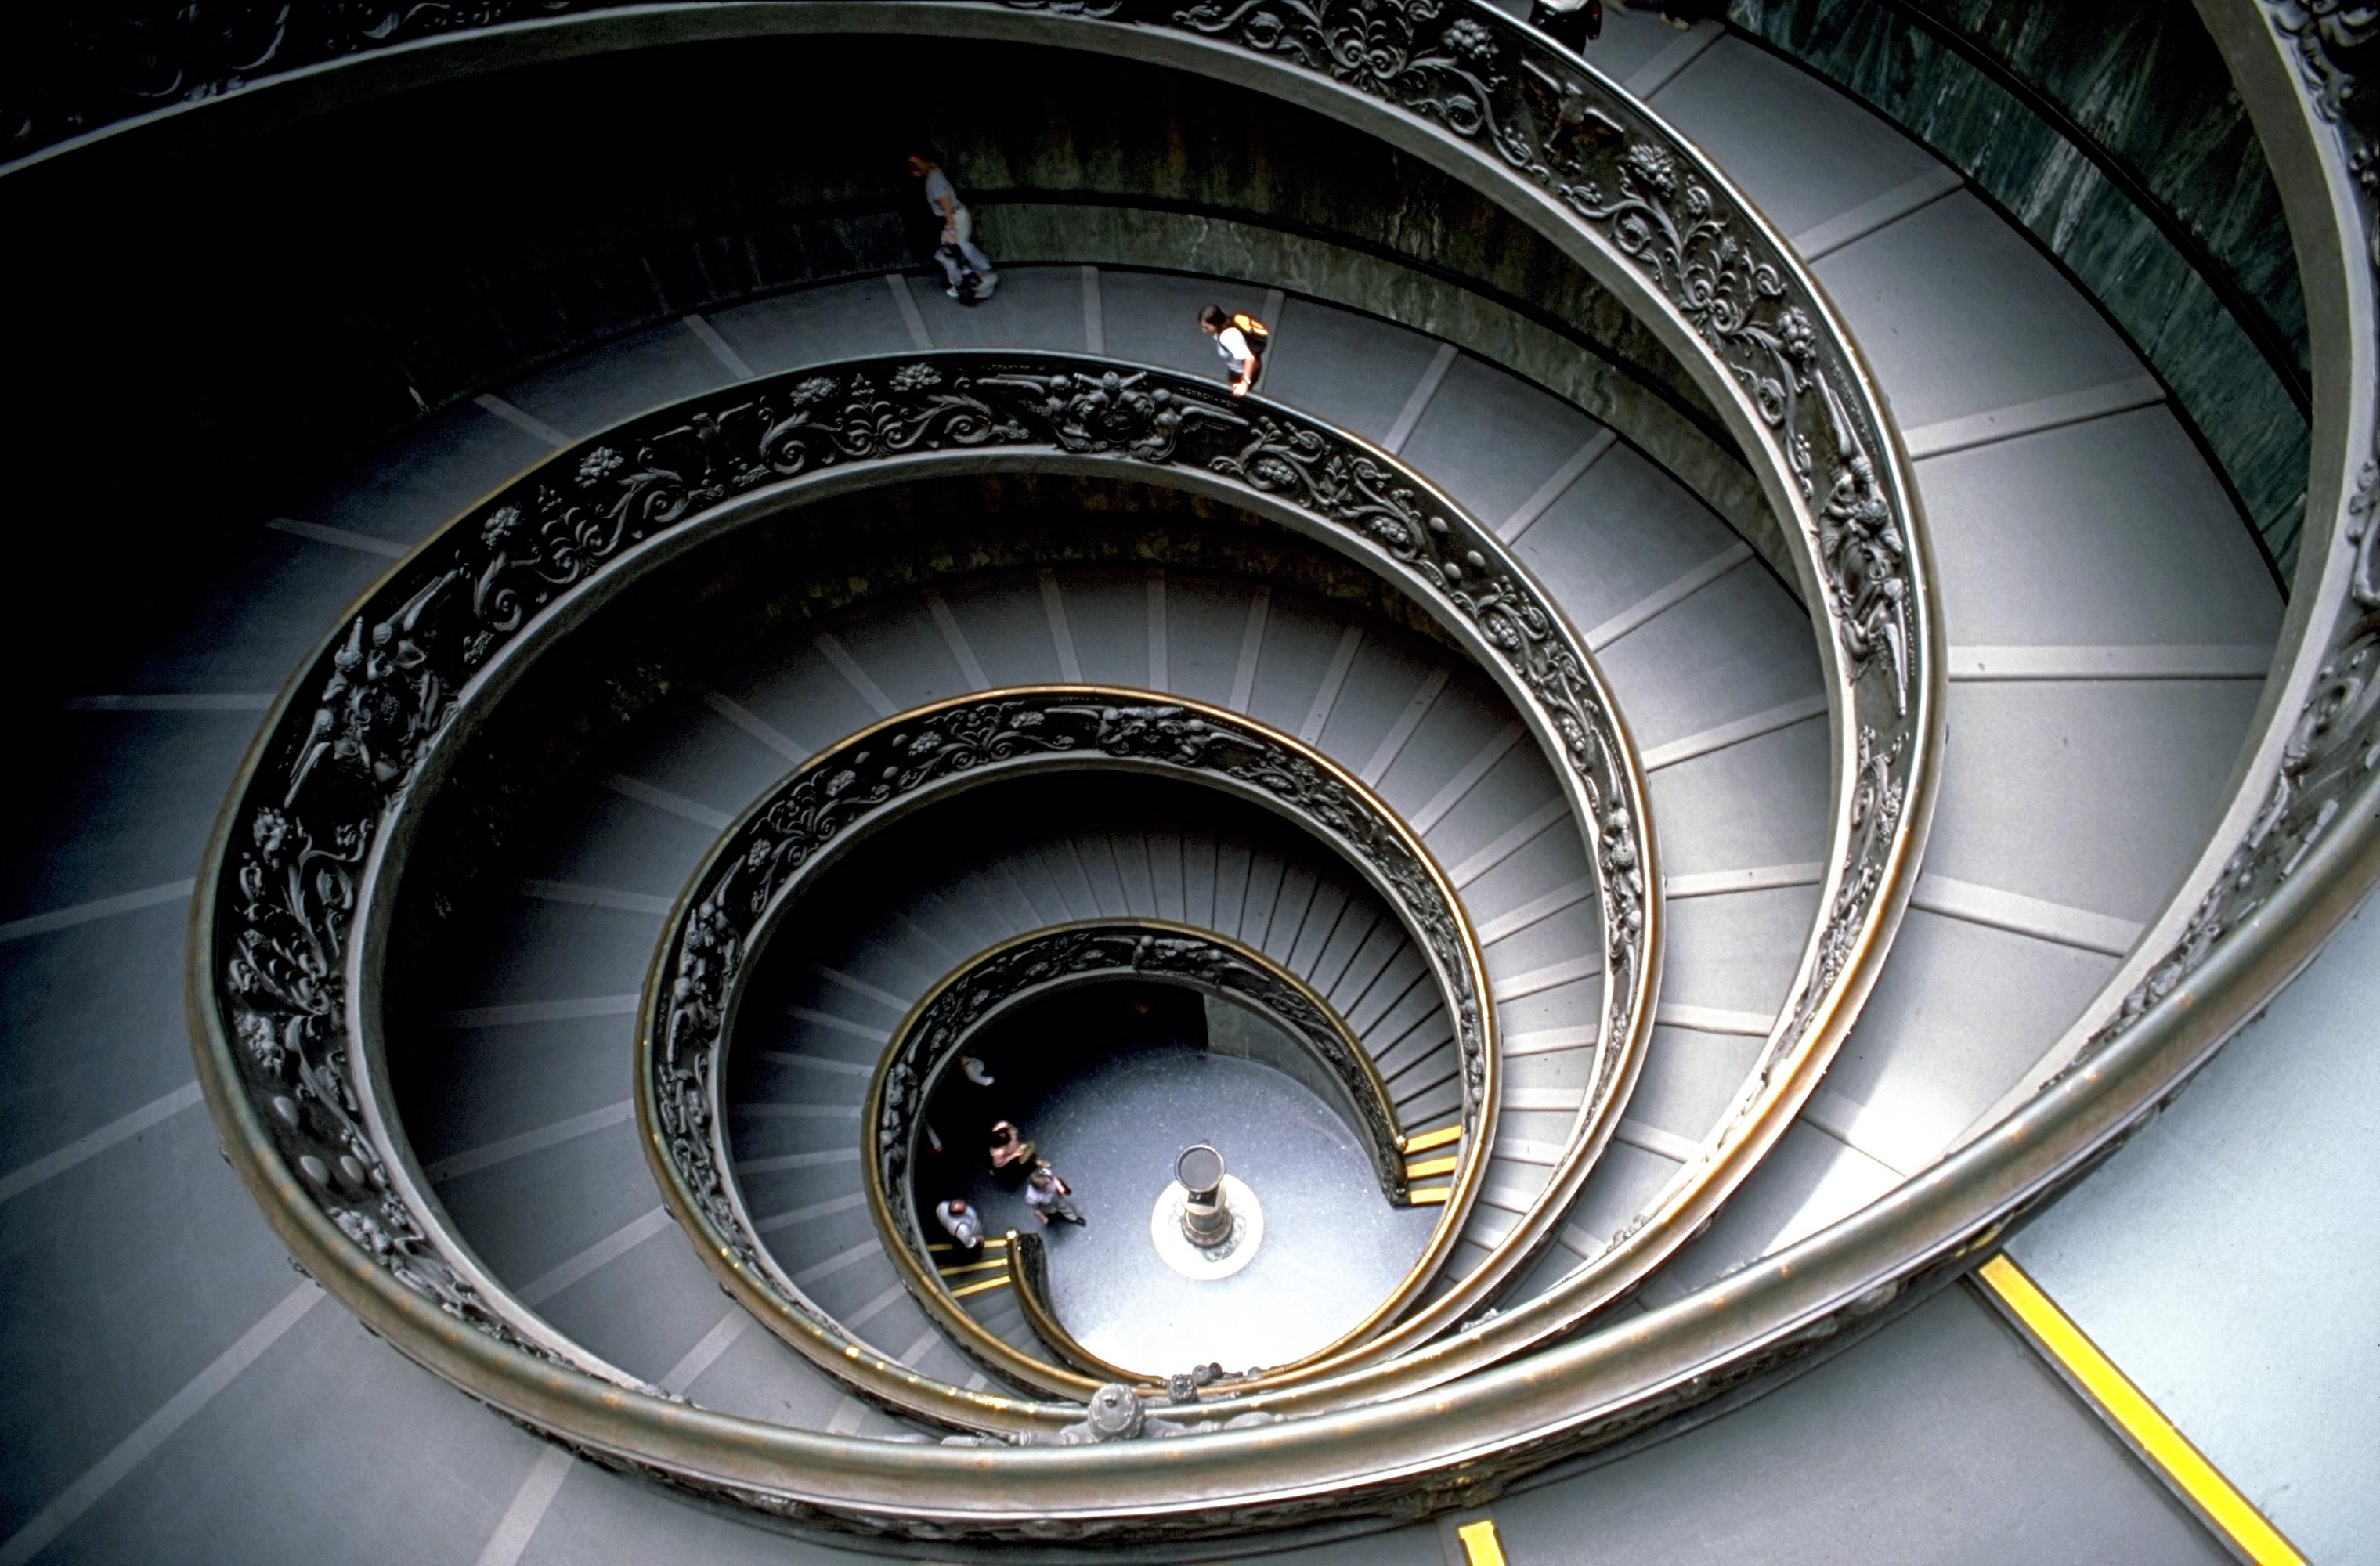 Vast Spiral Staircase Half In Darkness It Is A Stepped